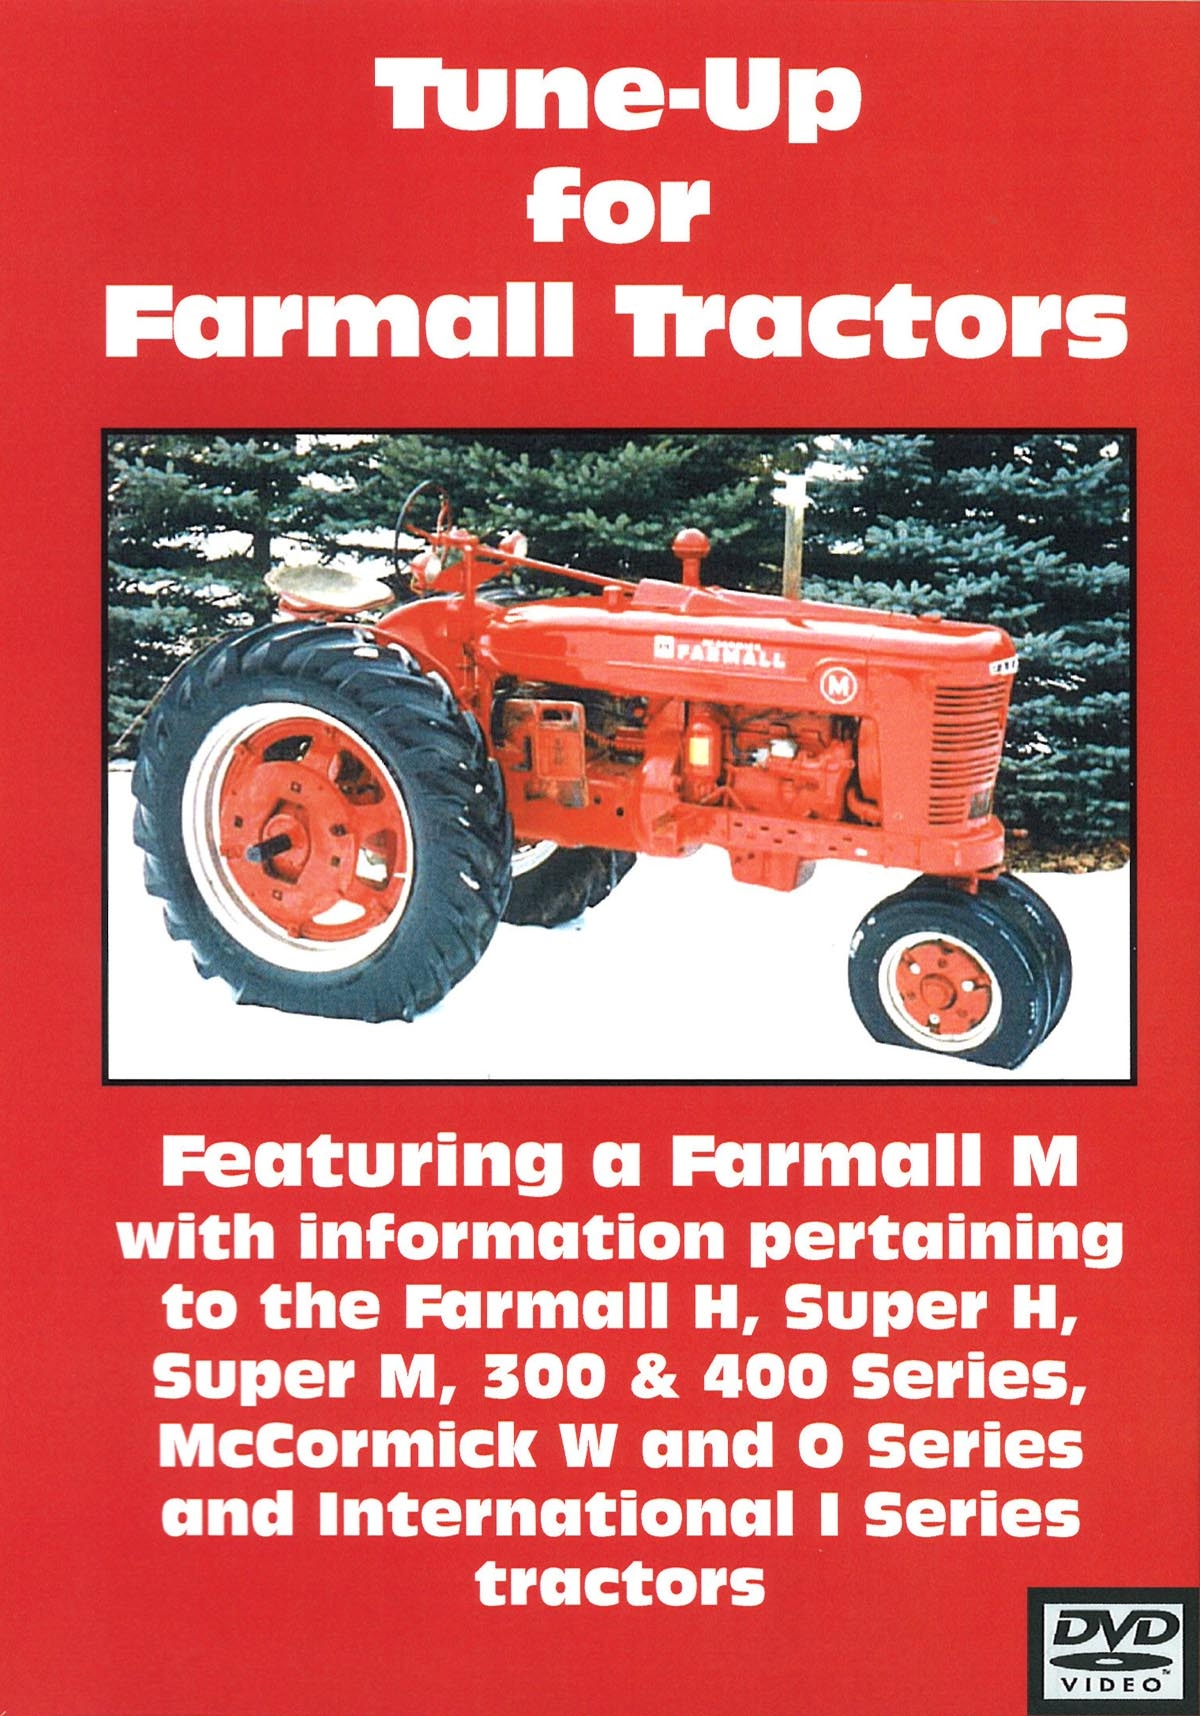 hight resolution of farmall h m 300 400 tune up video dvd for the case ih 300 400 h m model tractor s